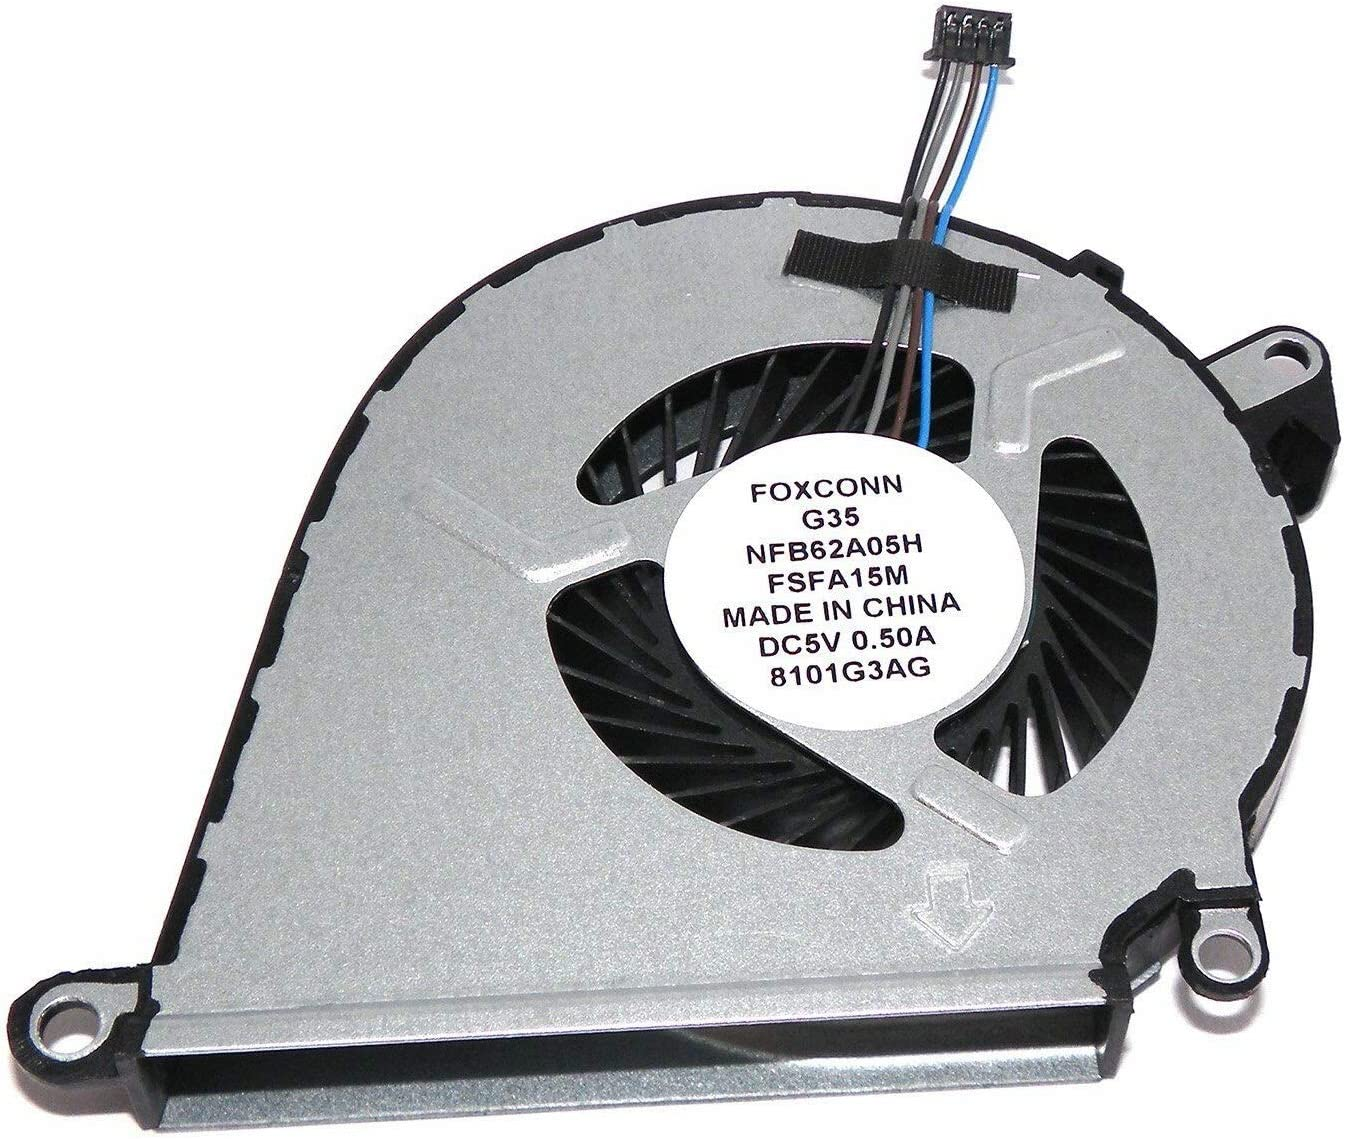 GIVWIZD Laptop Replacement CPU Cooling Fan for HP Omen 15-ax250wm 15-ax033dx 15-ax210nr 15-ax243dx 15-ax000na 15-ax000ne